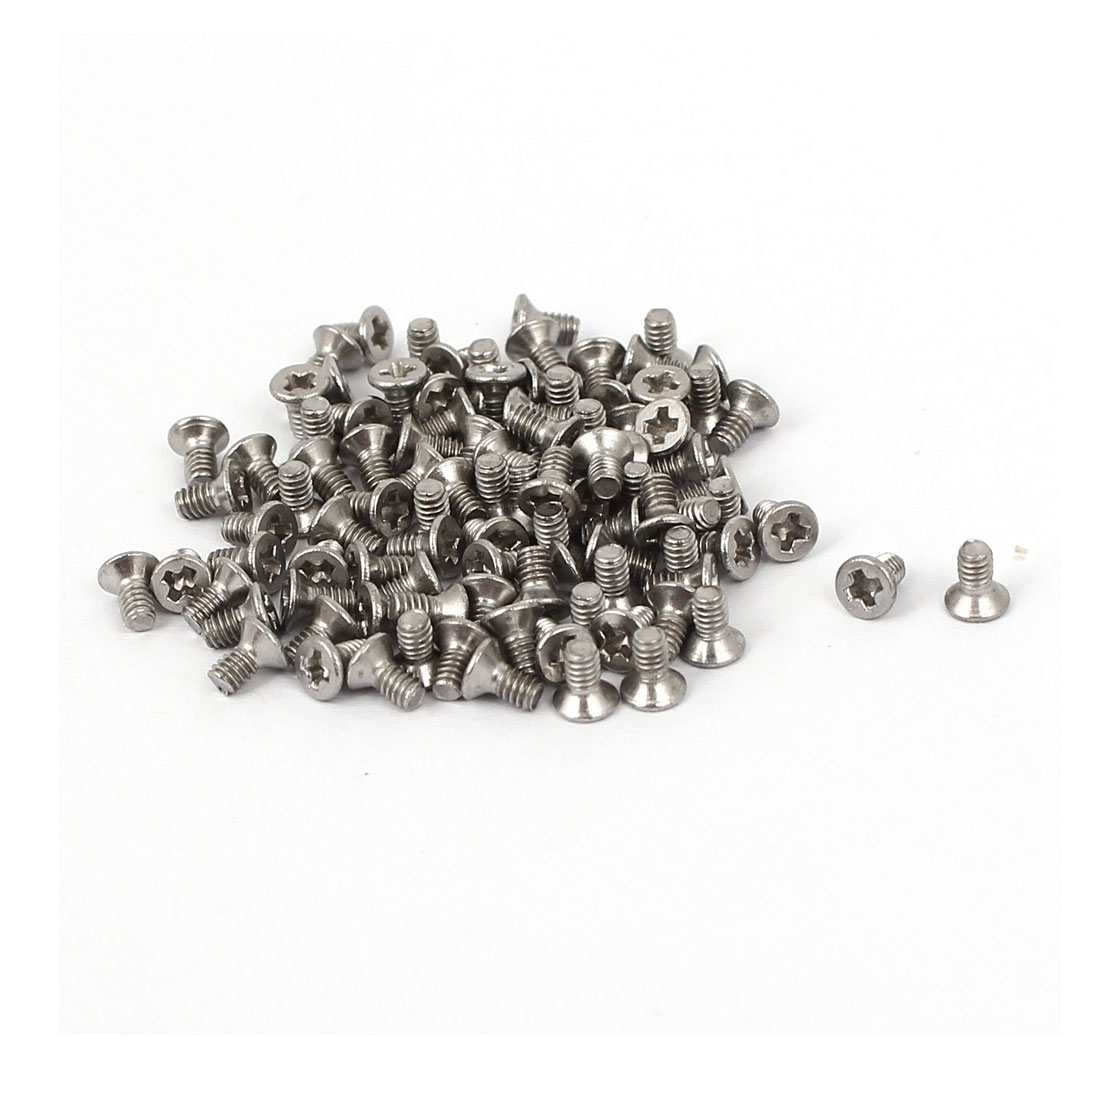 M2x4mm Stainless Steel Phillips Flat Countersunk Head Screws 100pcs